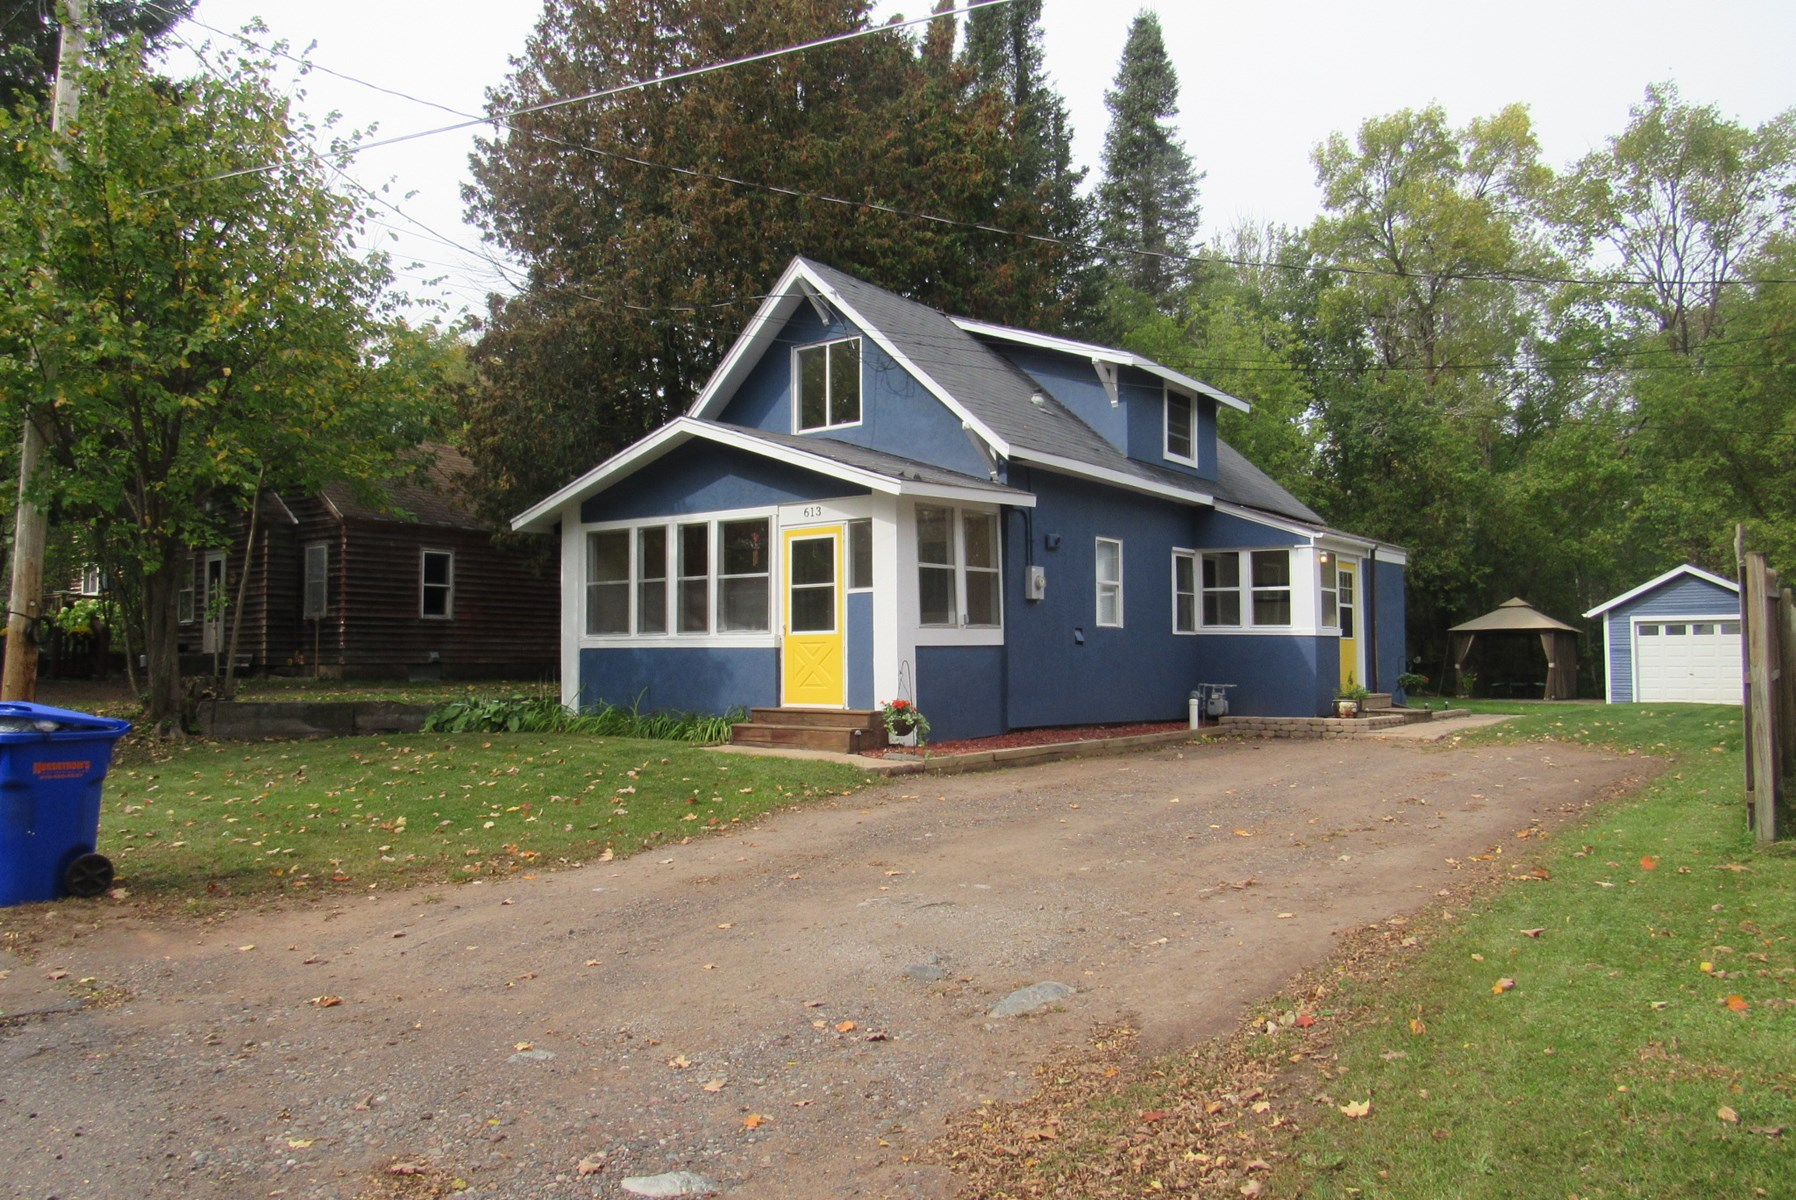 Home For Sale in Town Moose Lake, Minnesota